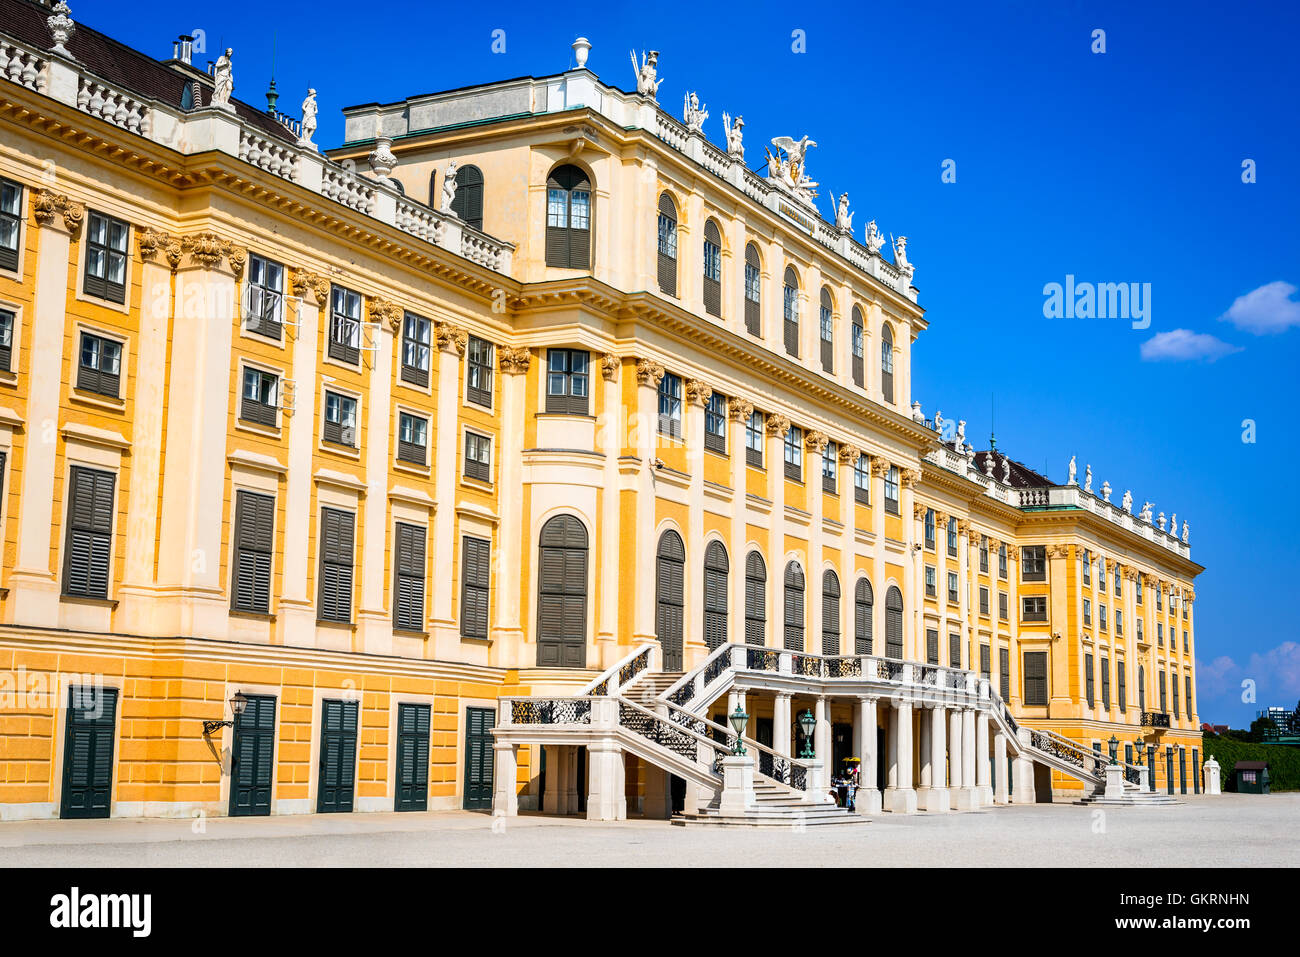 Vienna, Austria. Schonbrunn Palace in Wien. It's a former imperial 1,441-room Rococo summer residence in modern - Stock Image